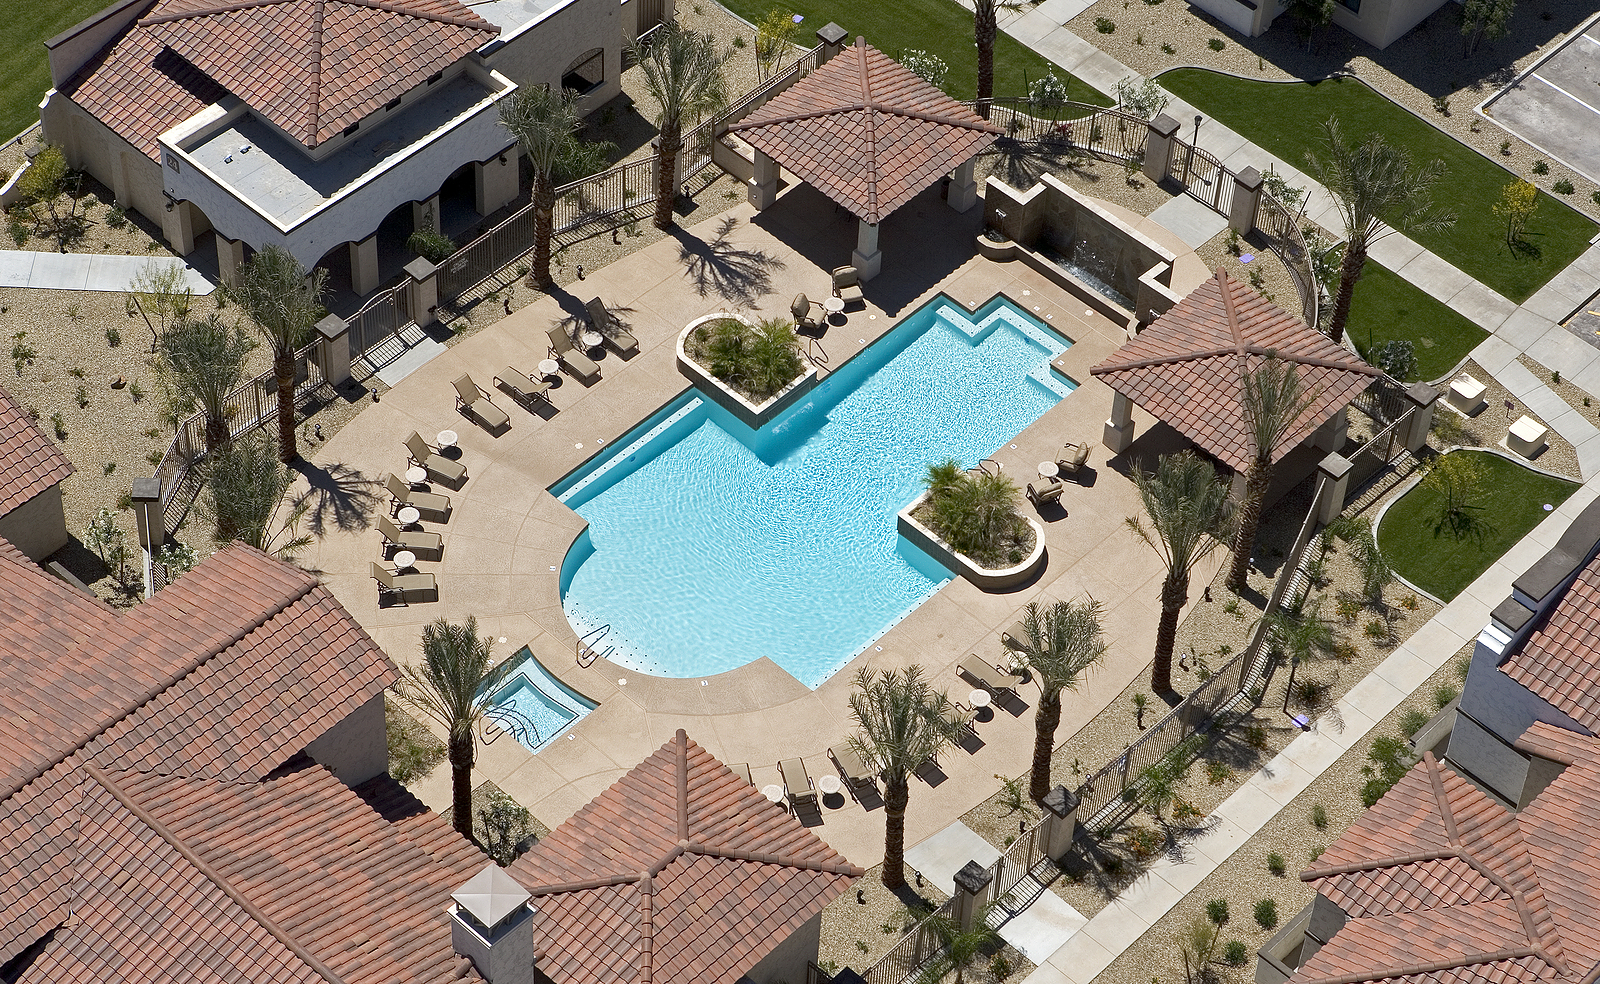 Commercial Pools | Omni Pool Builders & Design